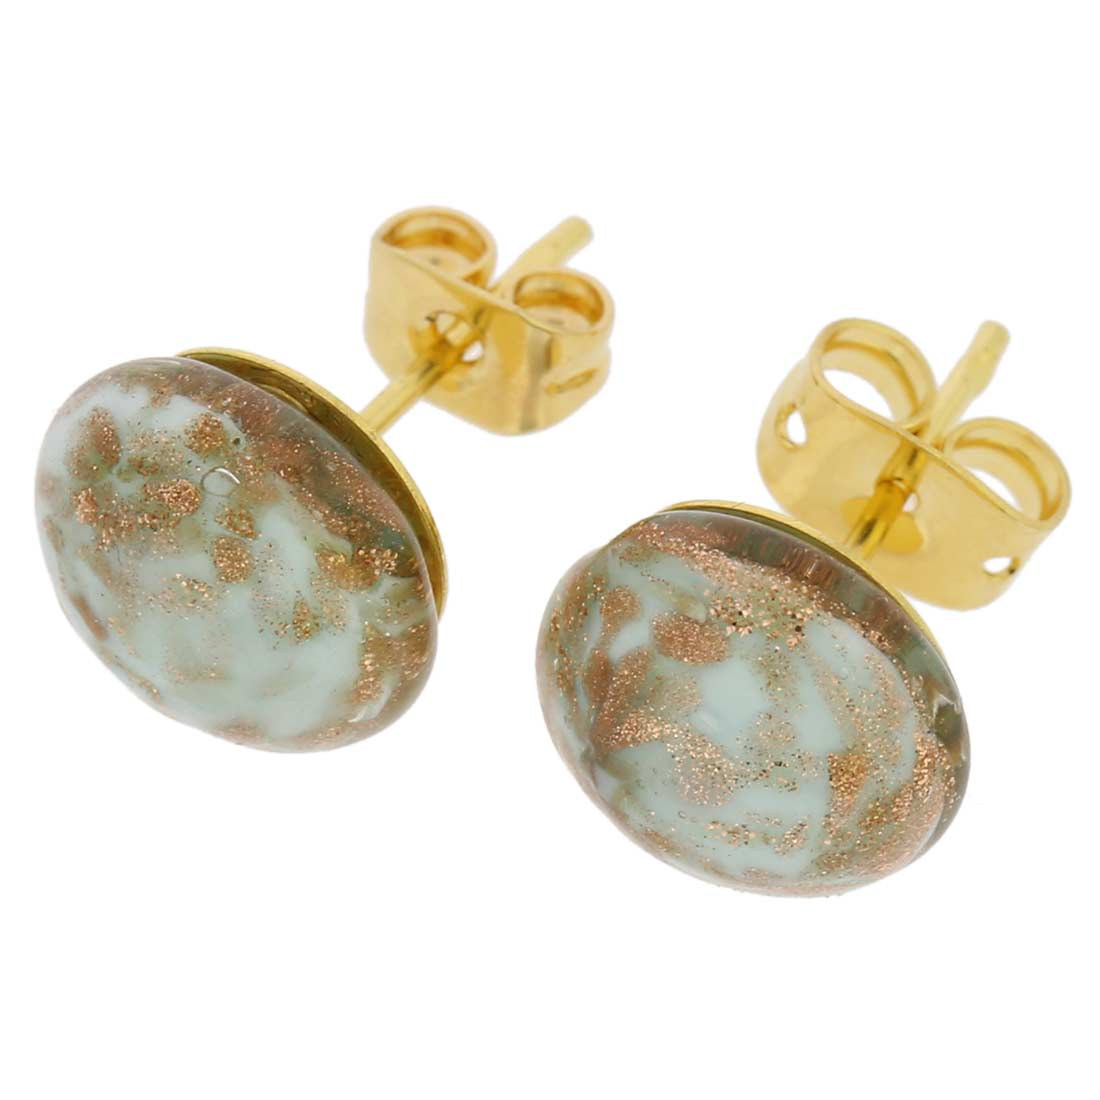 Starlight Small Stud Earrings - Sky Blue